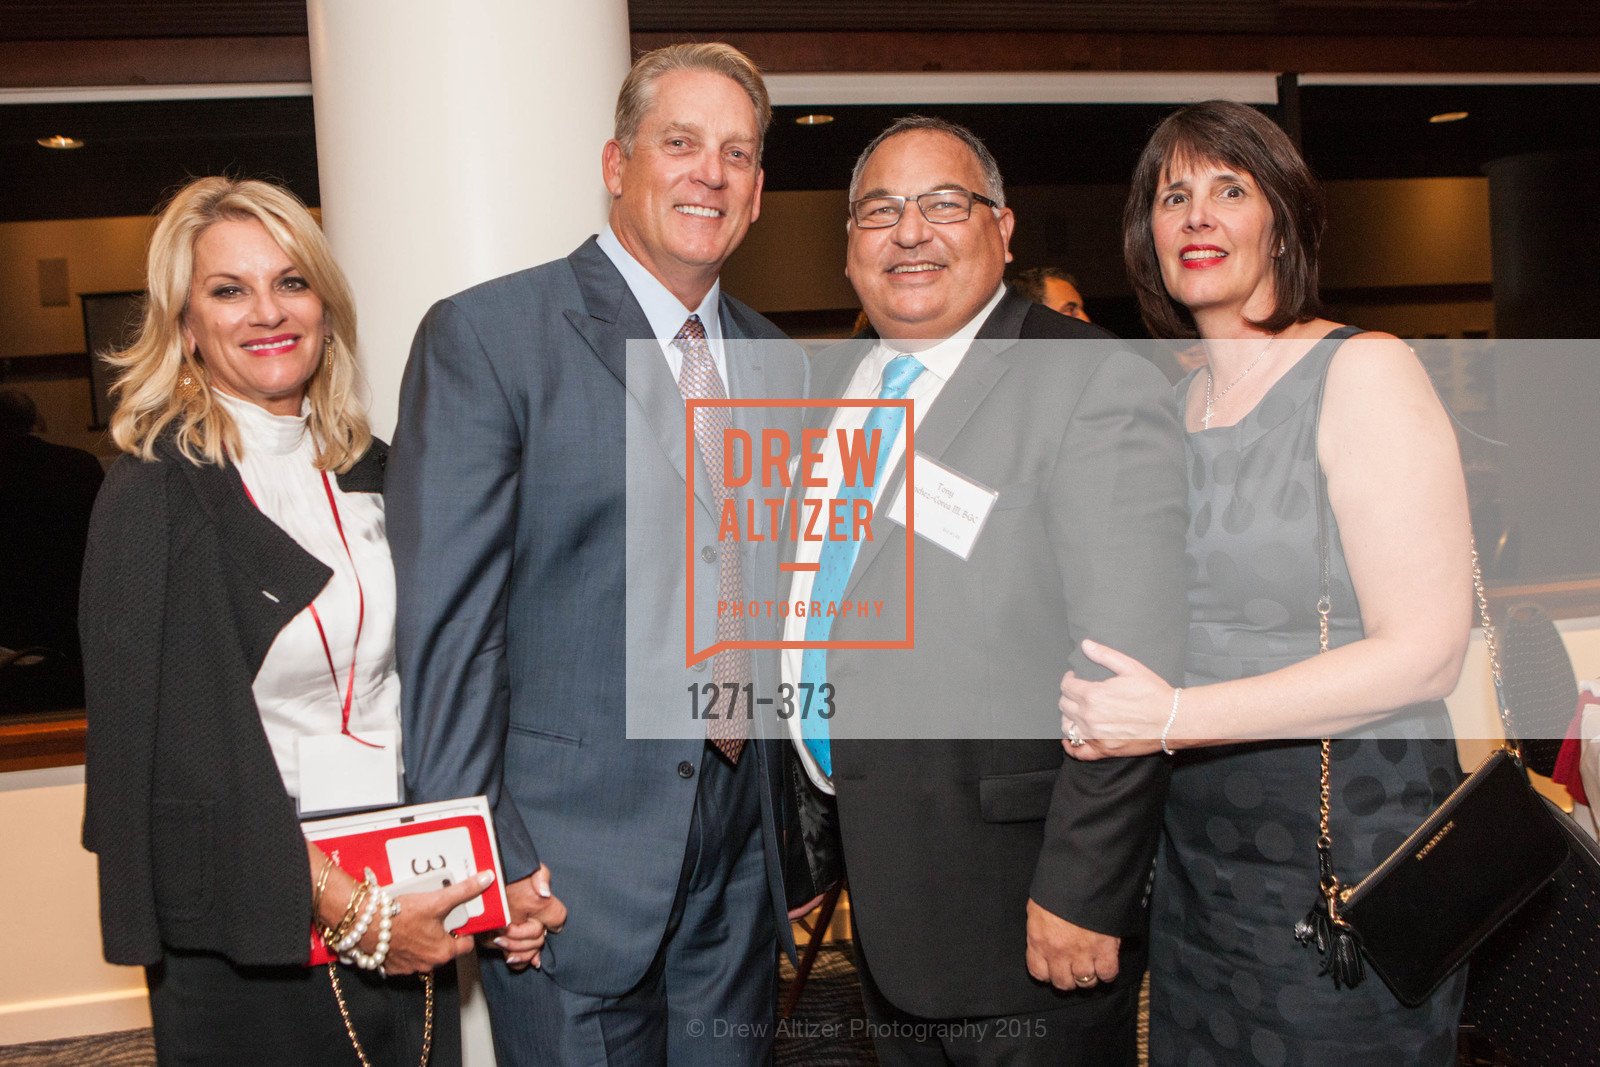 Linda Del Rio, Jack Del Rio, Tony Sanchez-Corea, Karen Sanchez-Corea, Sovereign Order of Malta Presents: A Knight for Champions, 7th Annual Silver Chalice Awards Dinner, St. Francis Yacht Club. 99 Yacht Rd, October 13th, 2015,Drew Altizer, Drew Altizer Photography, full-service agency, private events, San Francisco photographer, photographer california